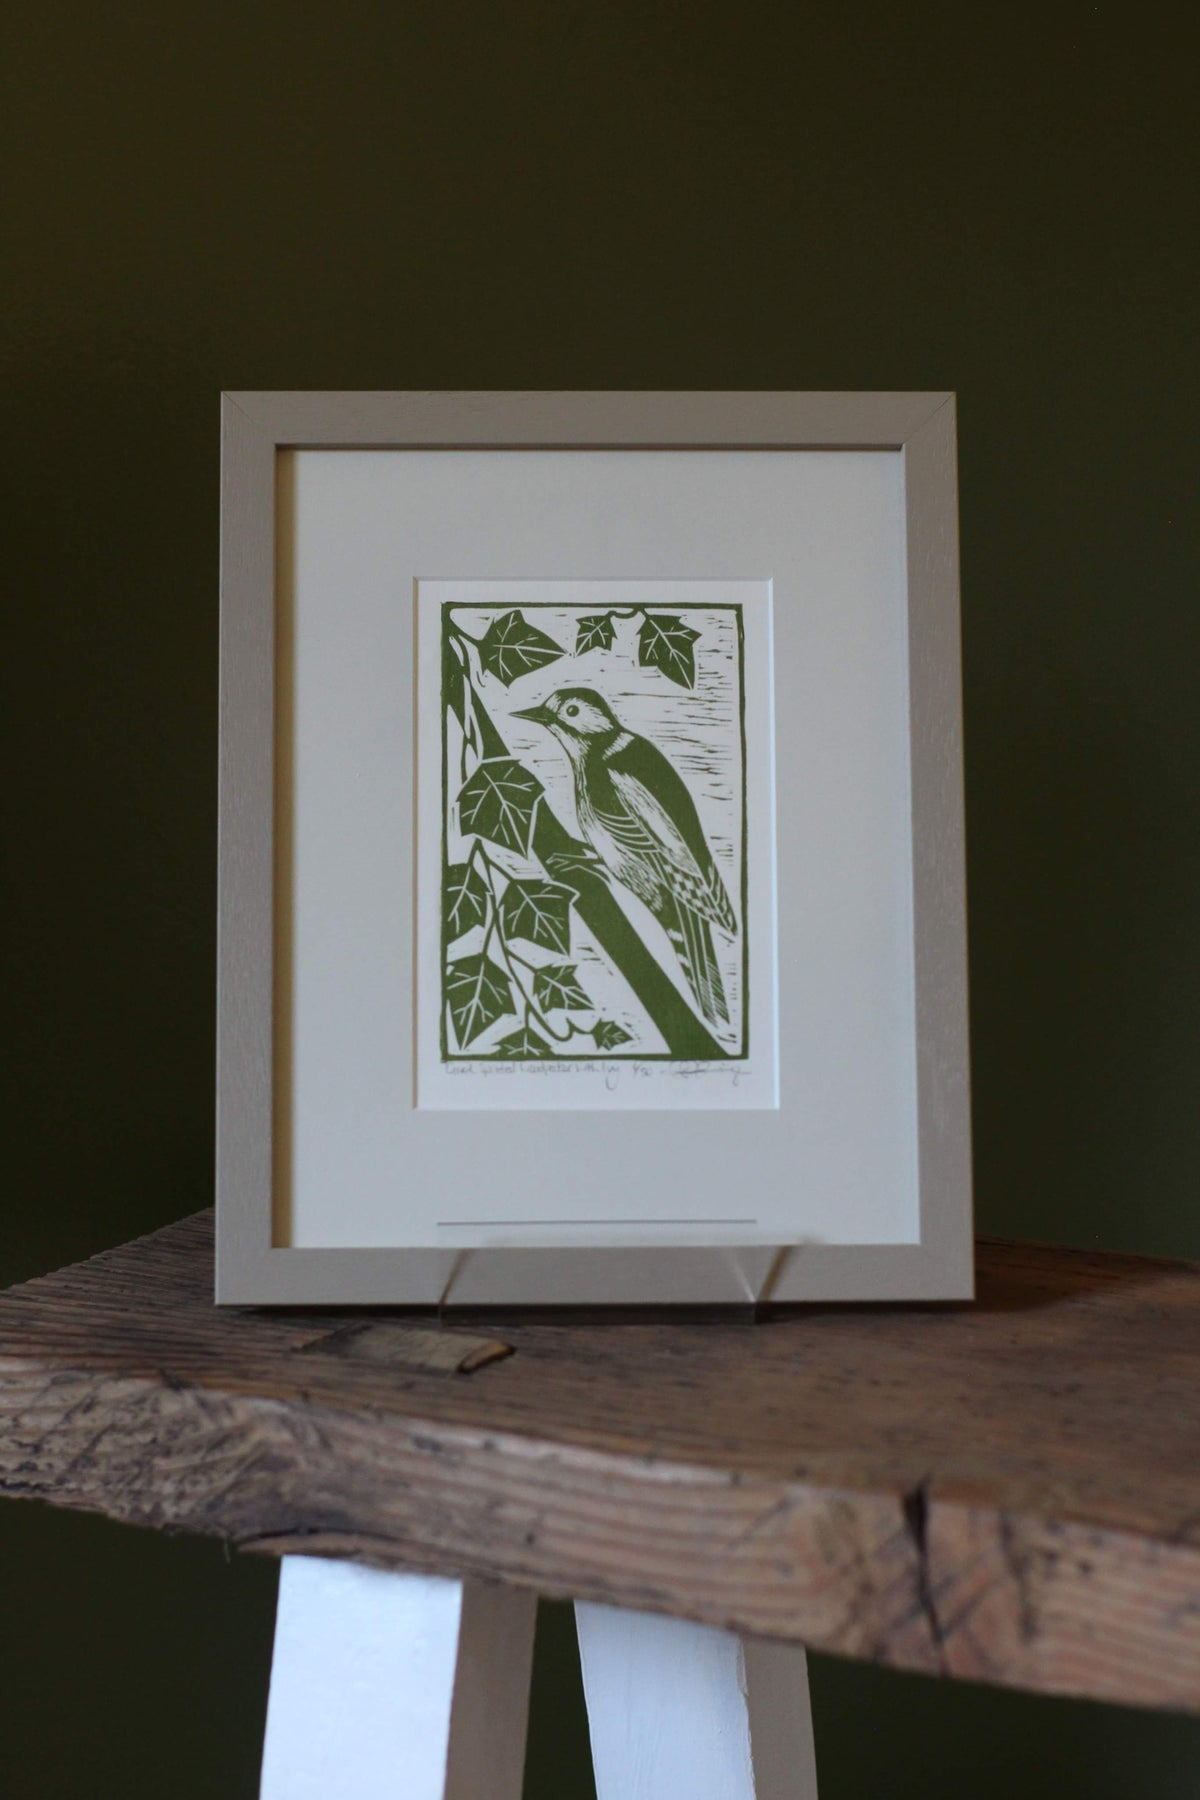 Image of Great spotted woodpecker framed in solid wood with conservation mount